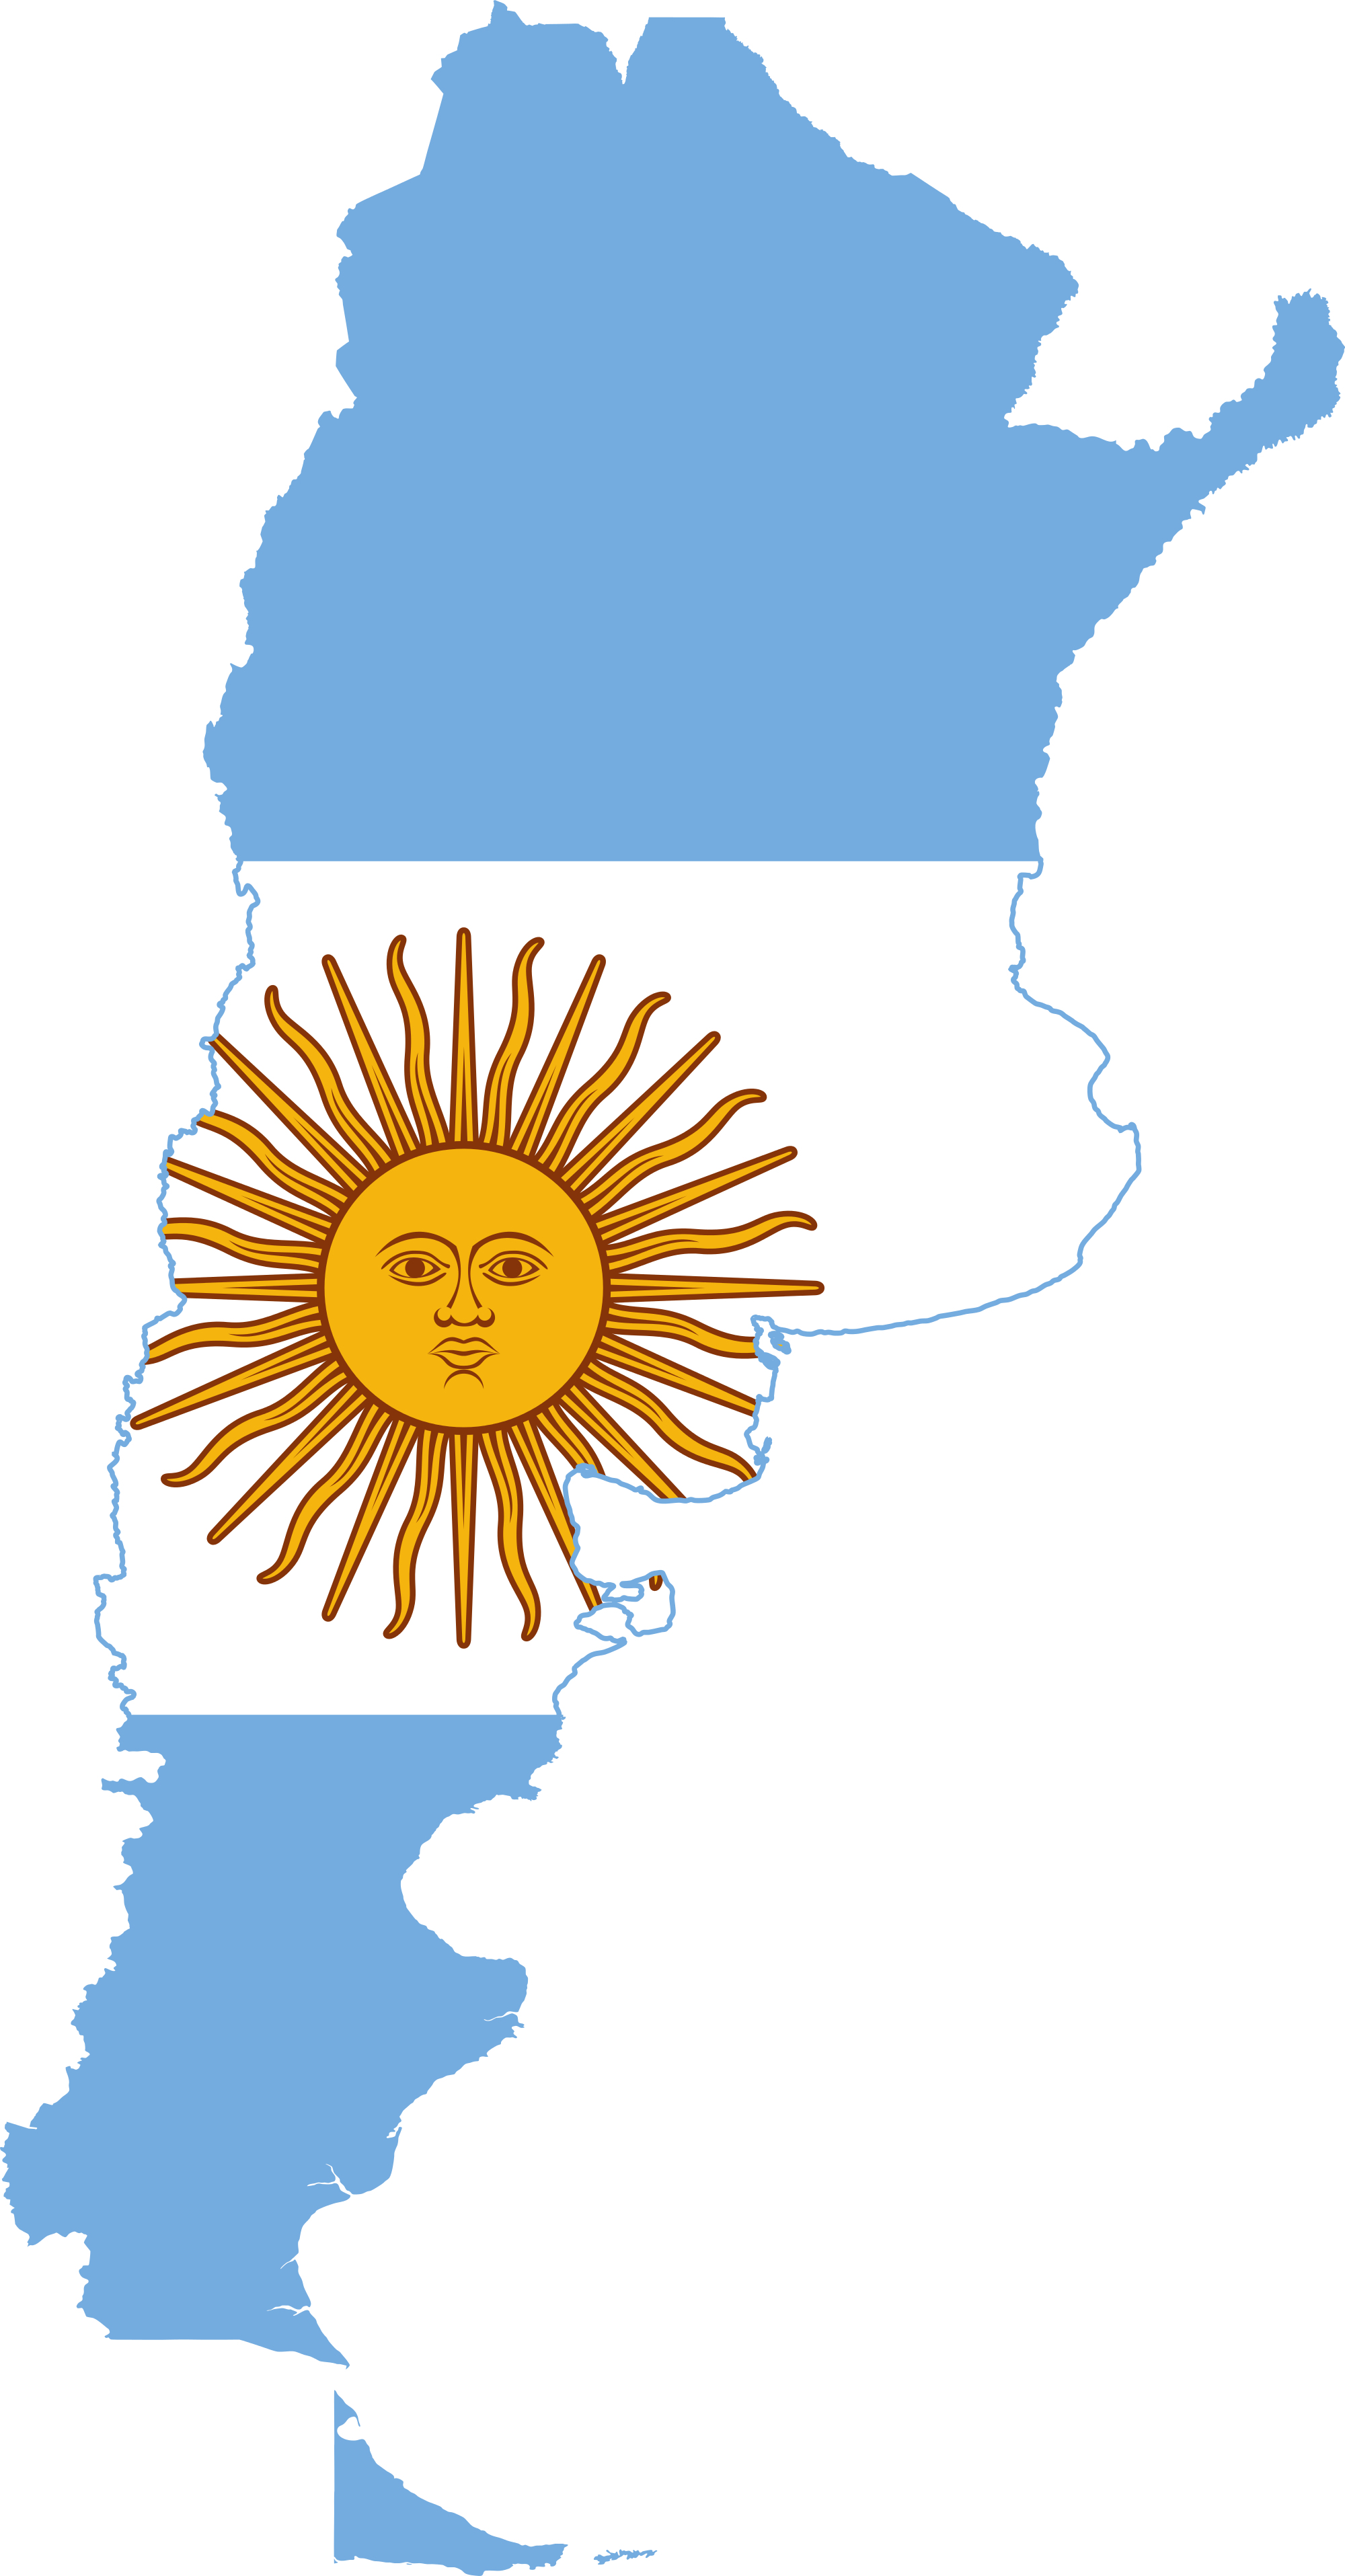 Argentina svg #14, Download drawings